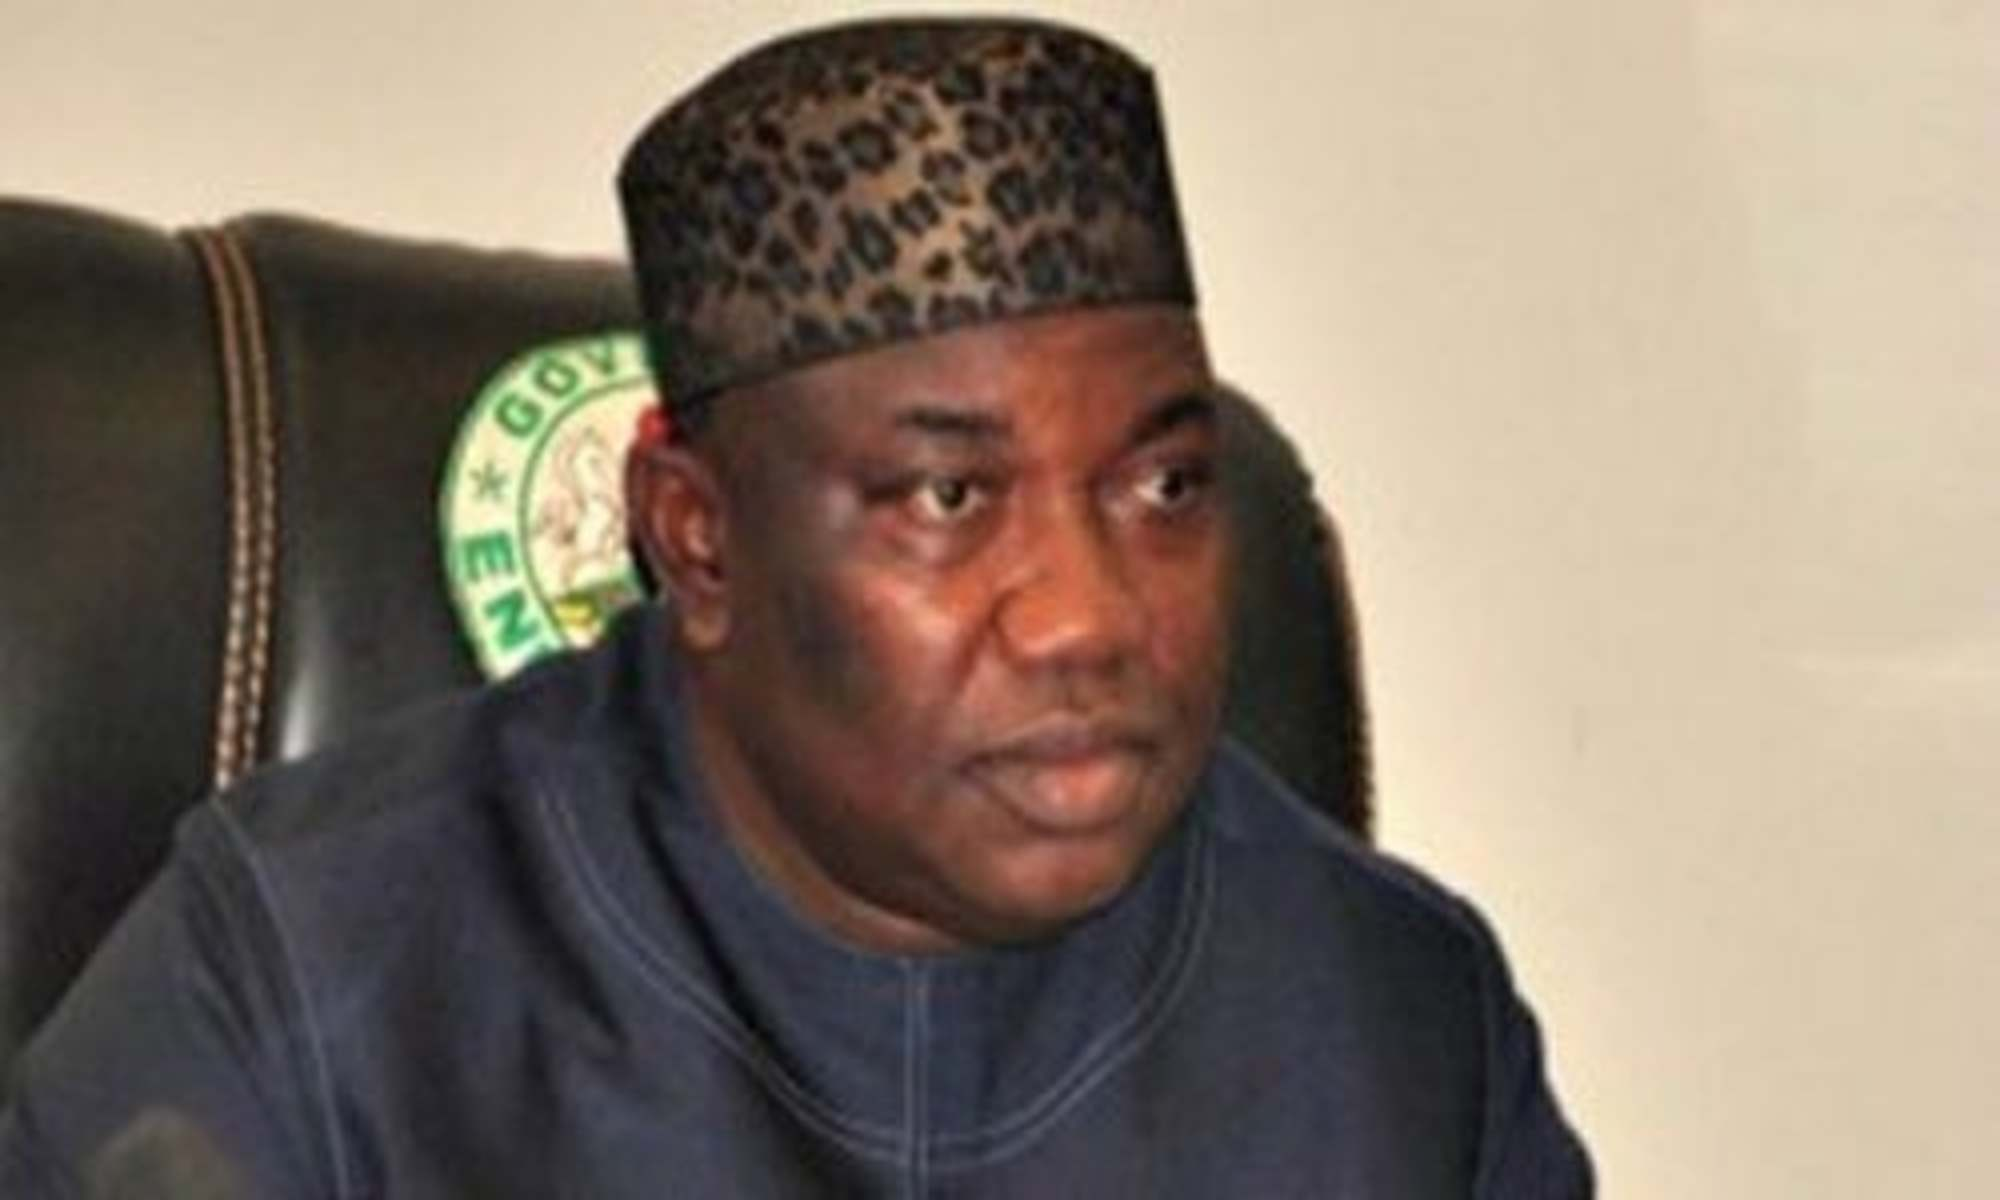 #EndSARS: Enugu Govt Adjusts 24-Hour Curfew